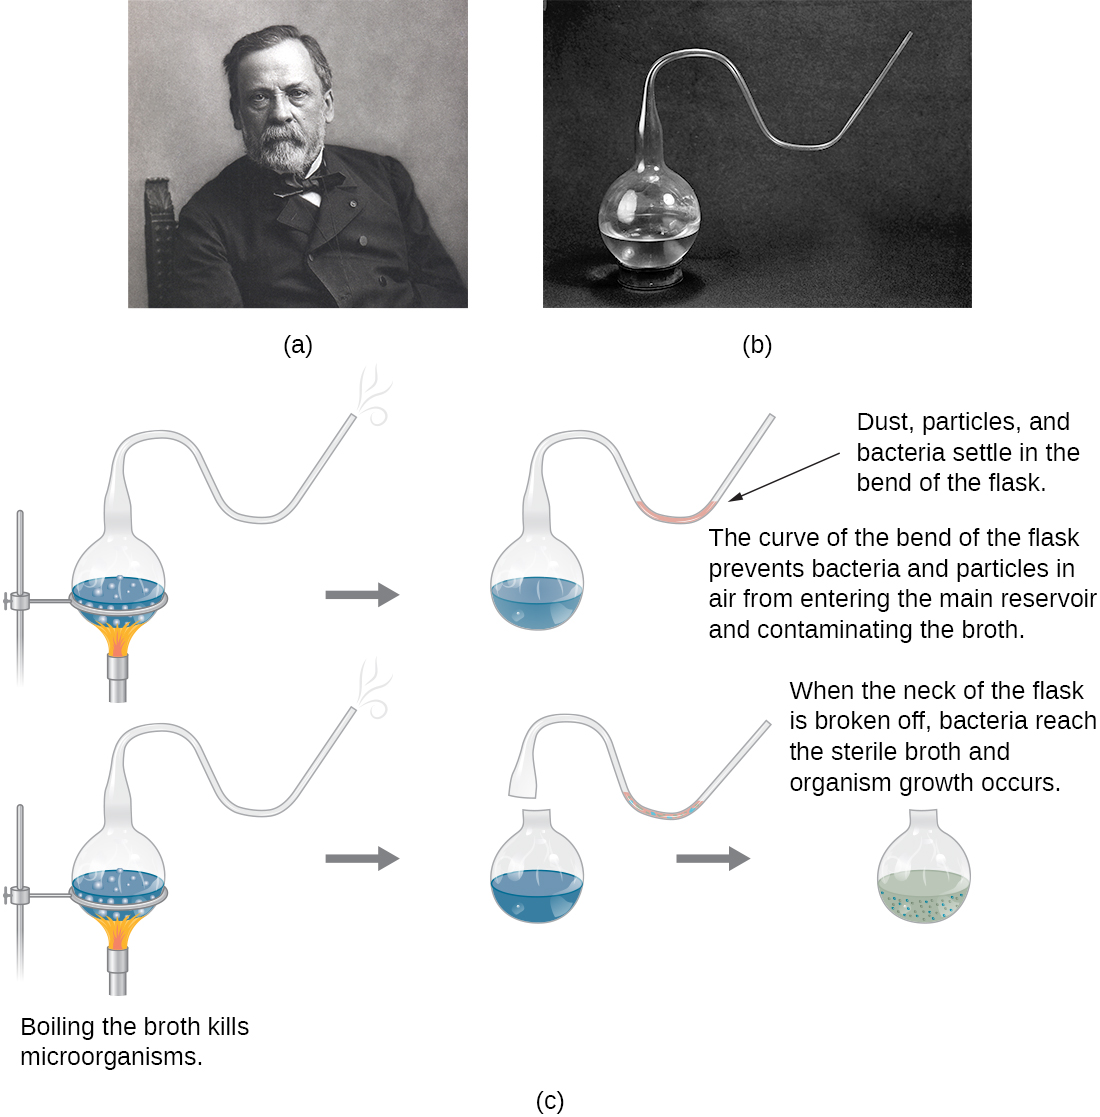 a) Photo of Louis Pasteur b) Photo of Pasteur's flask – a round flask that is only opened to the outside through a long S-shaped tube. c) A drawing of Pasteur's experiment. The top diagram shows the swan-neck flask from (b) containing broth that is being boiled to kill microorganisms in the broth. Dust, particles, and bacteria settle in the bend of the flask. After the boiling process the cooled flask remains sterile because the curve of the bend of the flask prevents bacteria and particles in air from entering the main reservoir and contaminating the broth. So, no contamination occurs. The bottom diagram shows the same flask being boiled. Next, the swan-neck is removed and the flask is opened to the environment. When the neck of the flask is broken off, bacteria reach the sterile broth and organism growth occurs. This is seen as cloudiness in the broth.